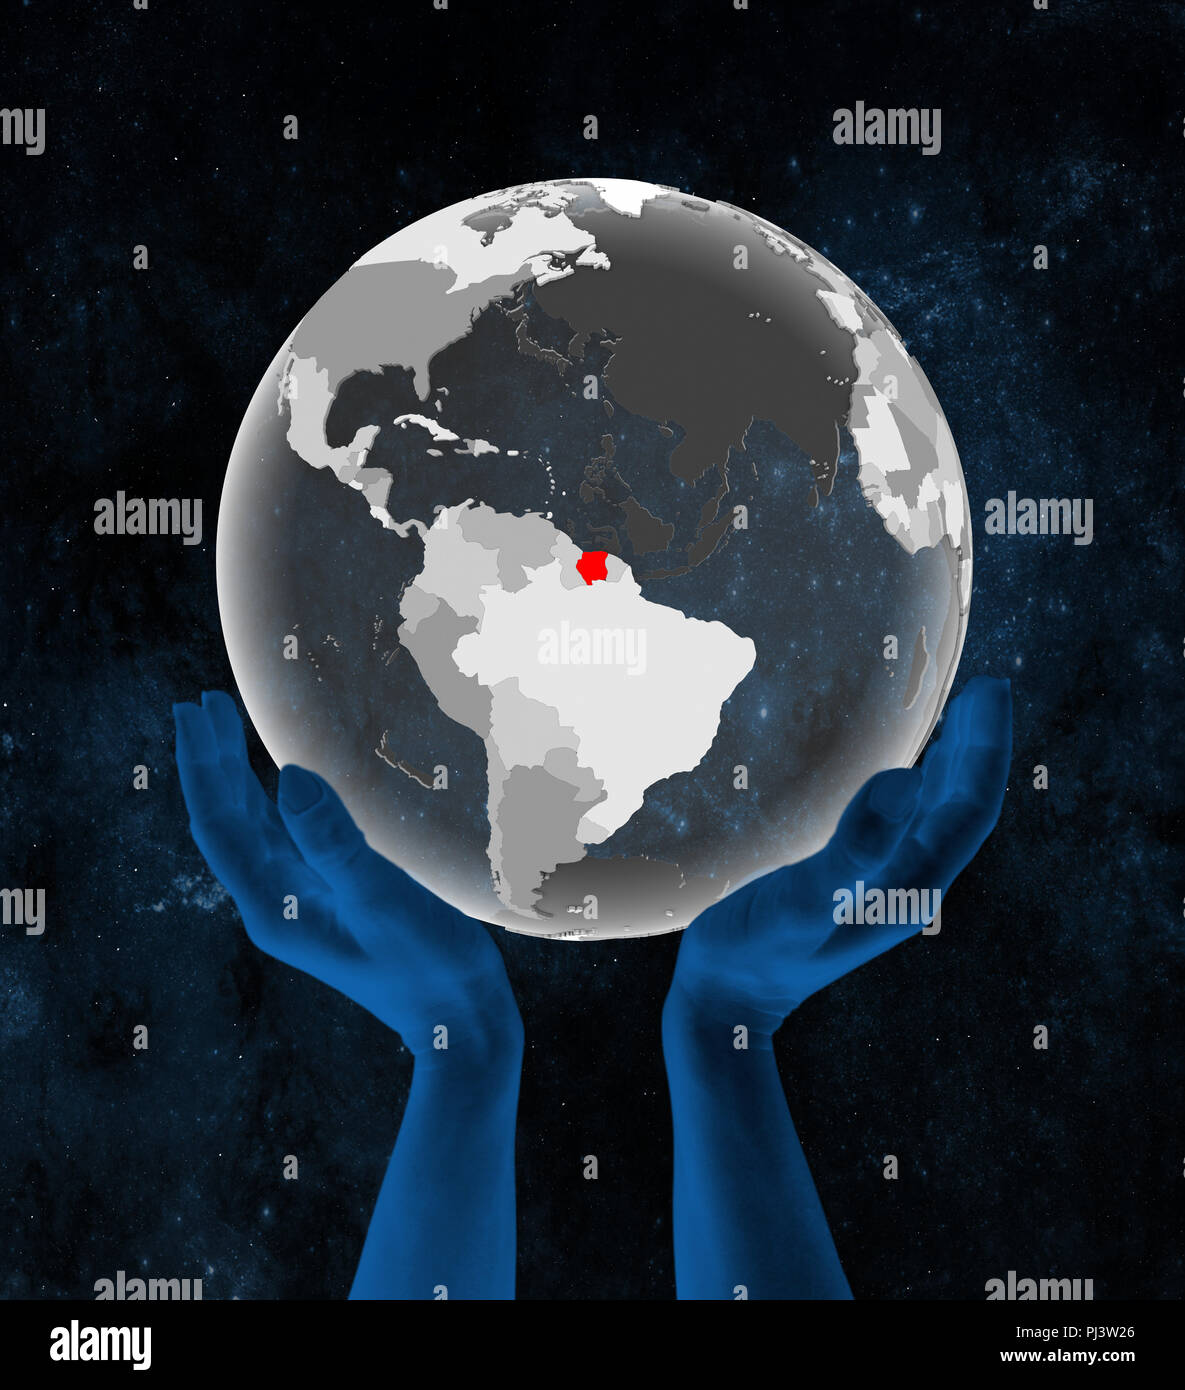 Suriname on translucent globe in hands in space. 3D illustration. - Stock Image